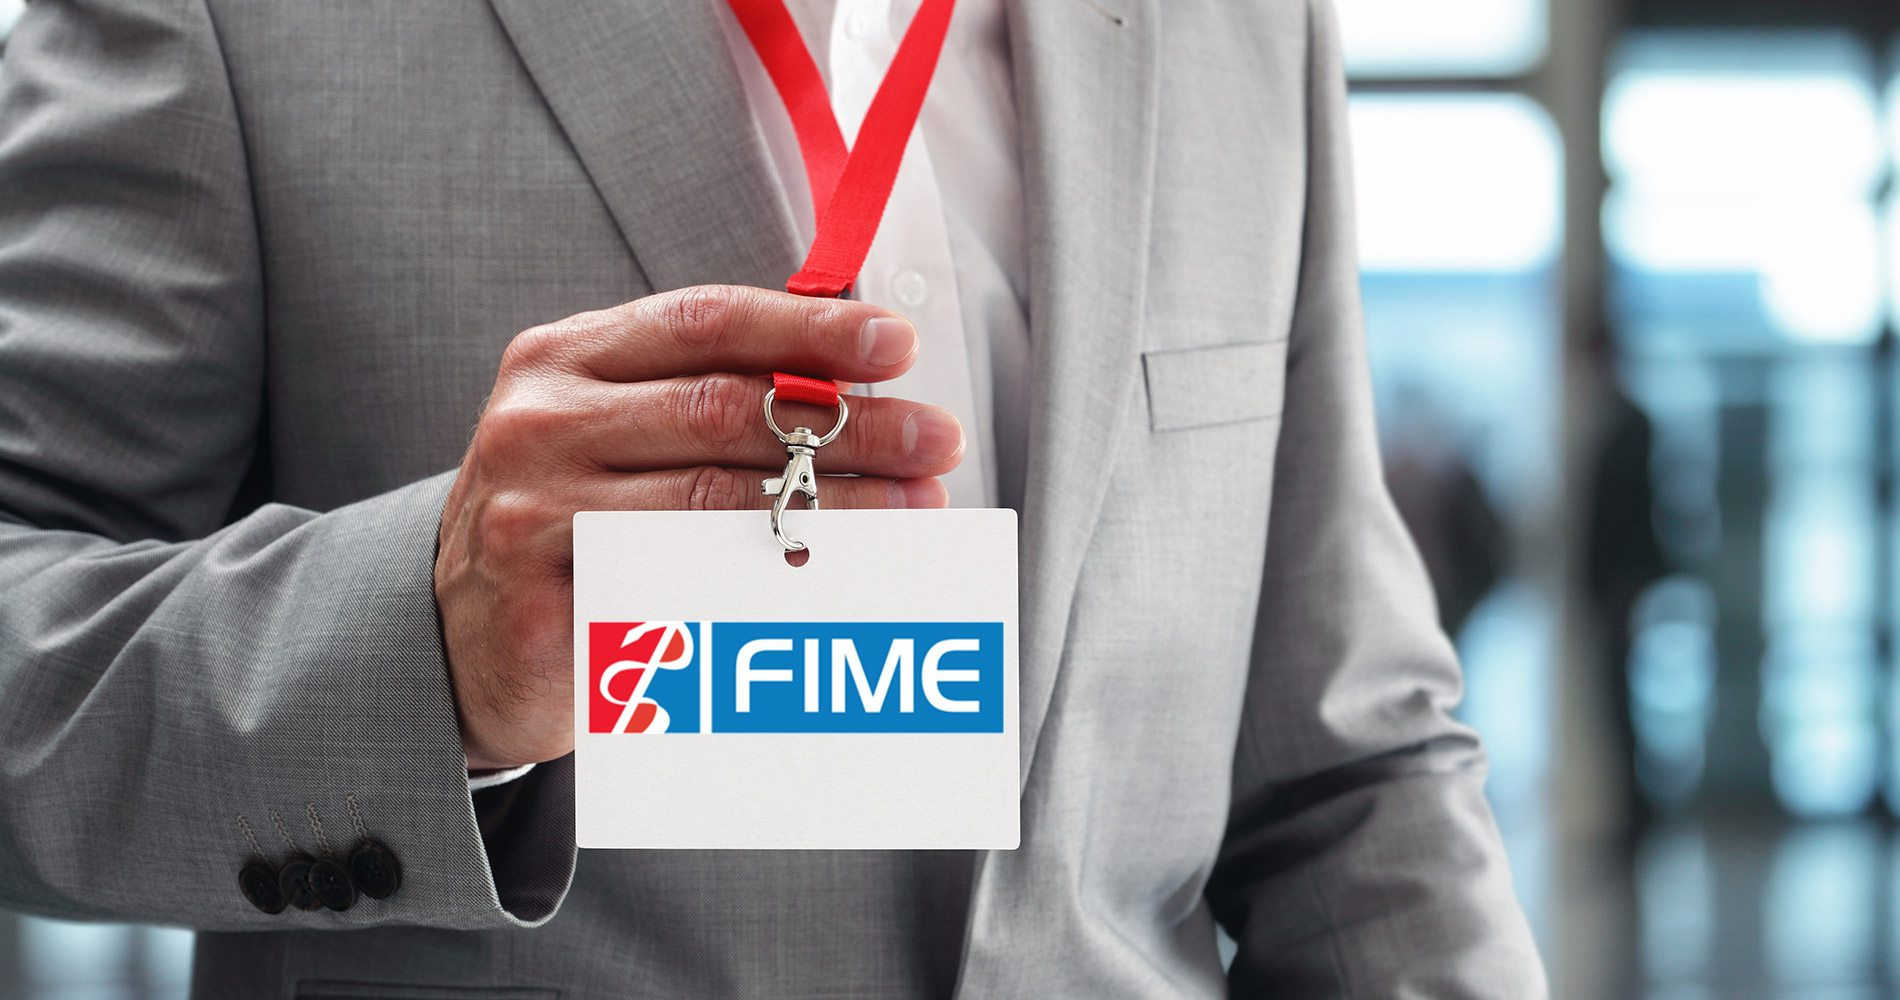 FIME Trade Show Promotional Products